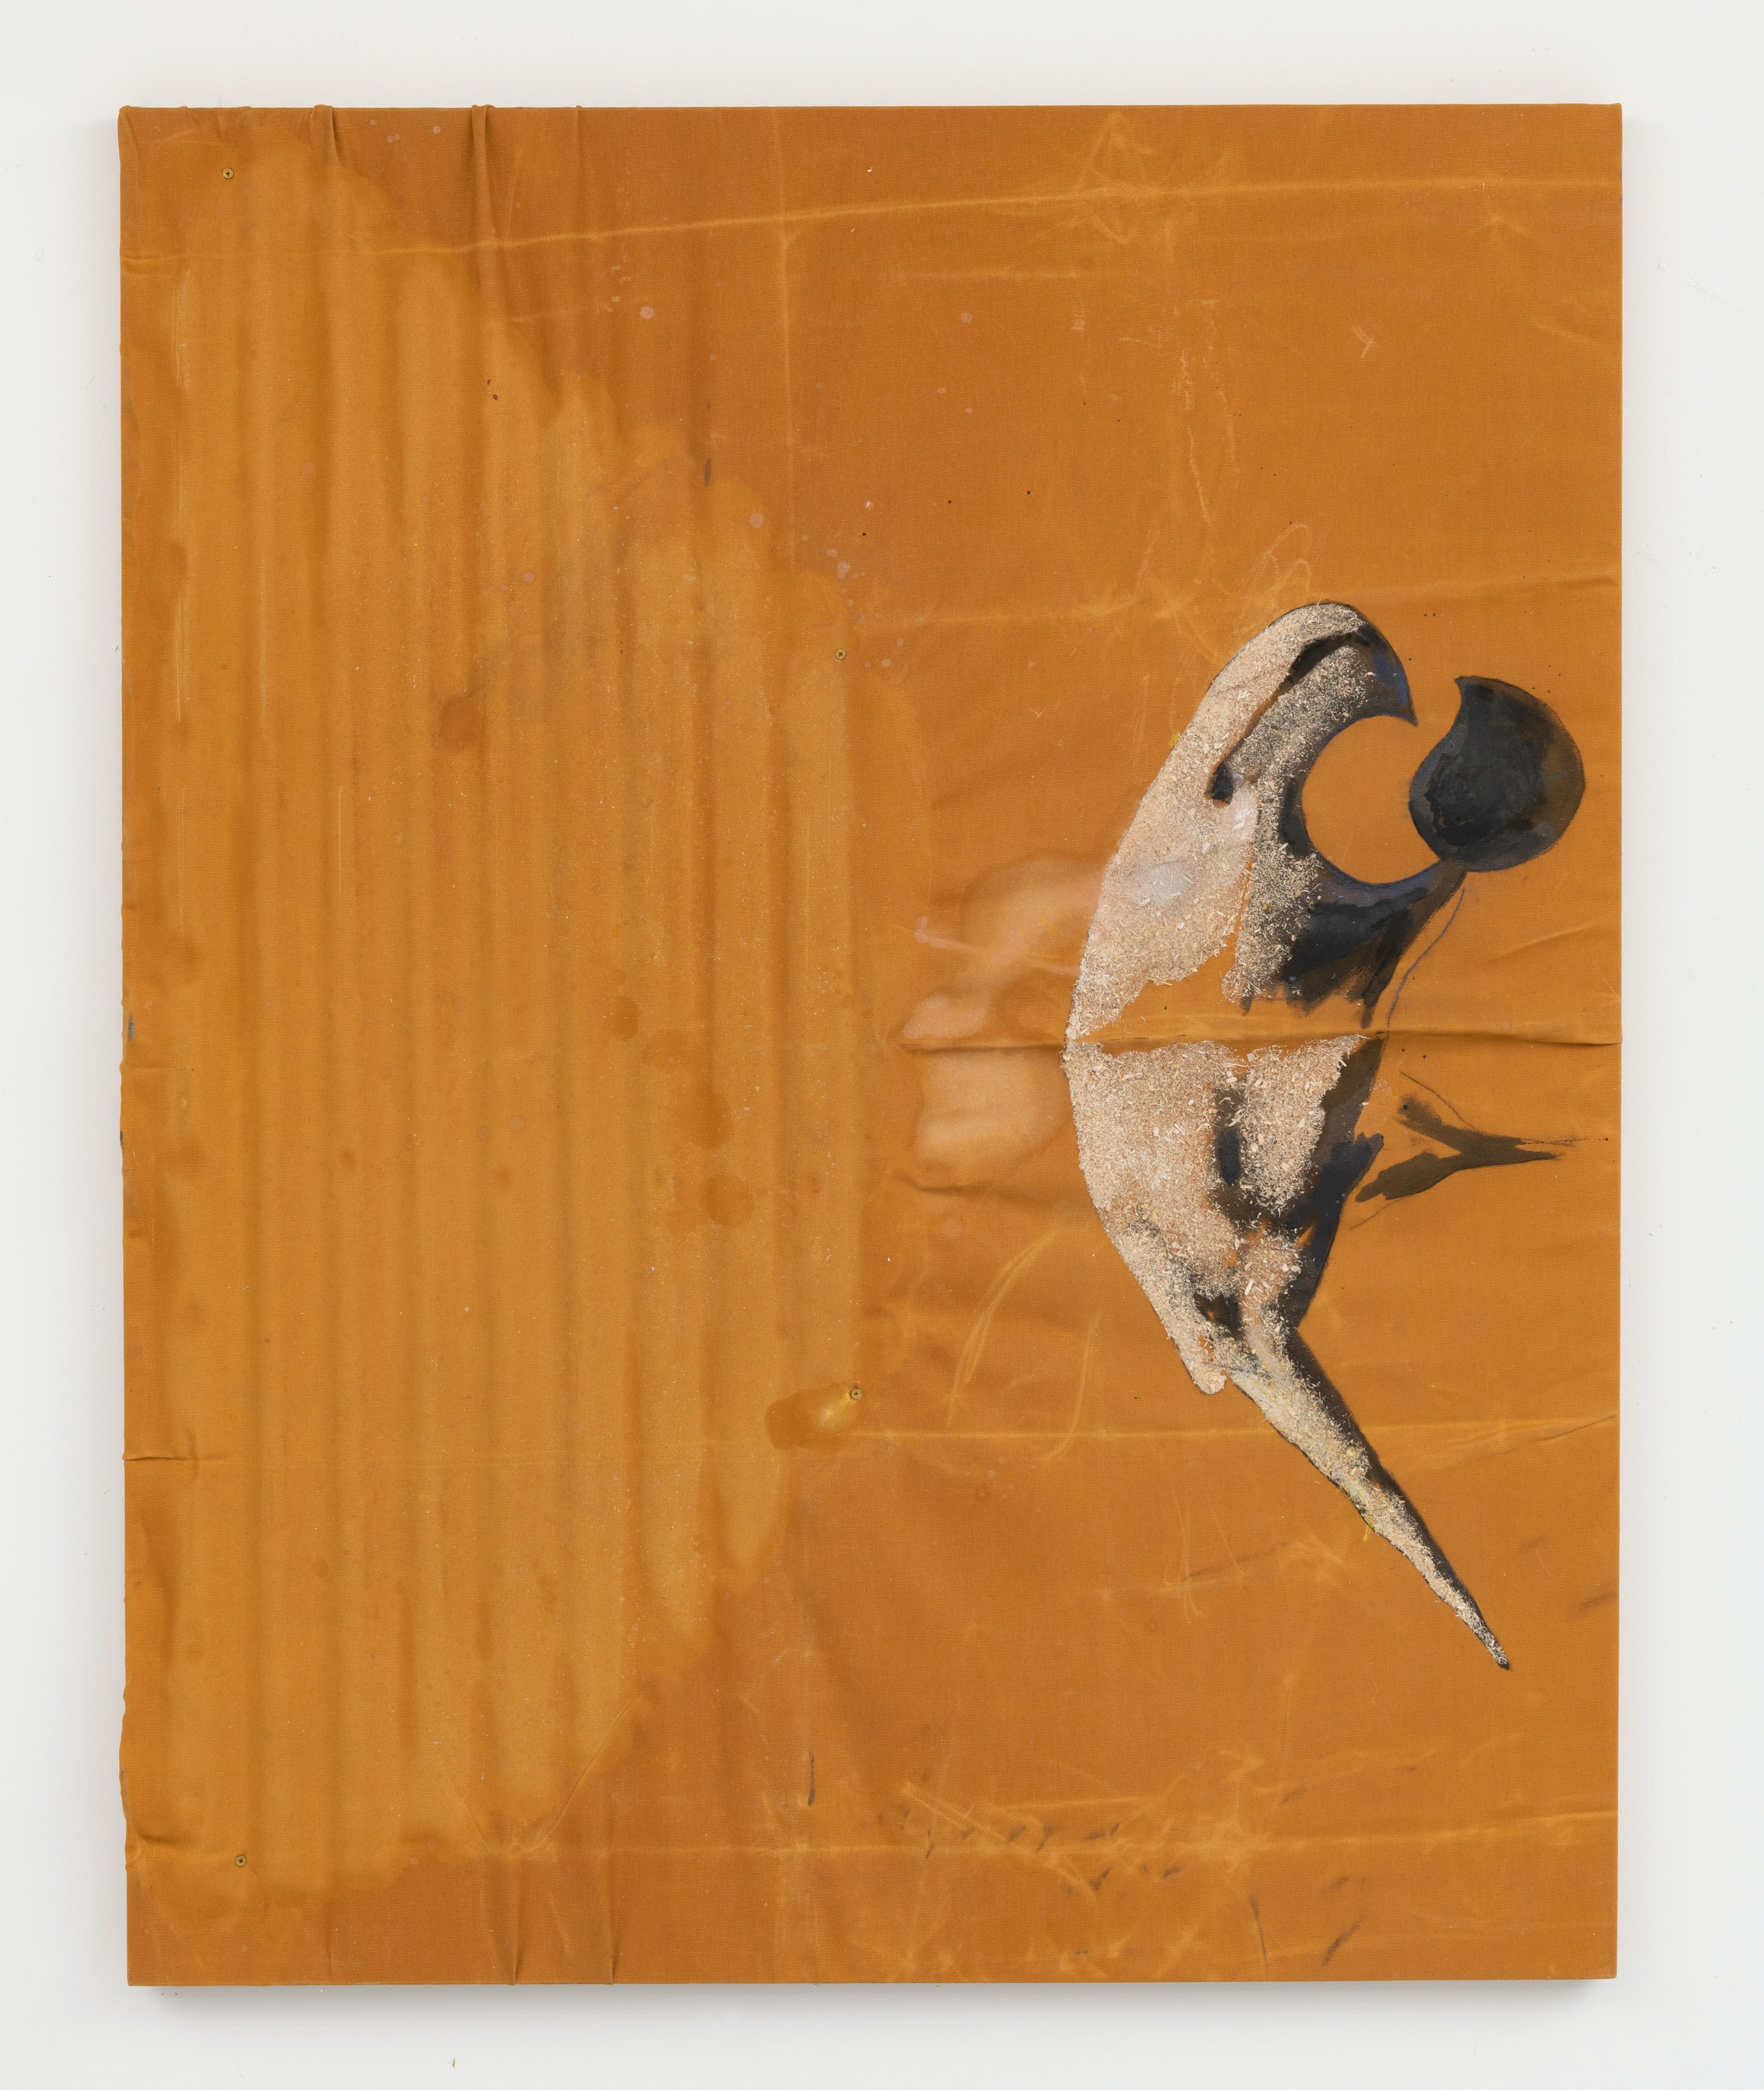 Rosy Keyser, <em>Metabolic Berd</em>, 2021. Oil, medium, sawdust and pastel on waxed canvas and molded paper. 58 x 46 inches. Courtesy Ceysson & Bénétière. Photo: ©Adam Reich.